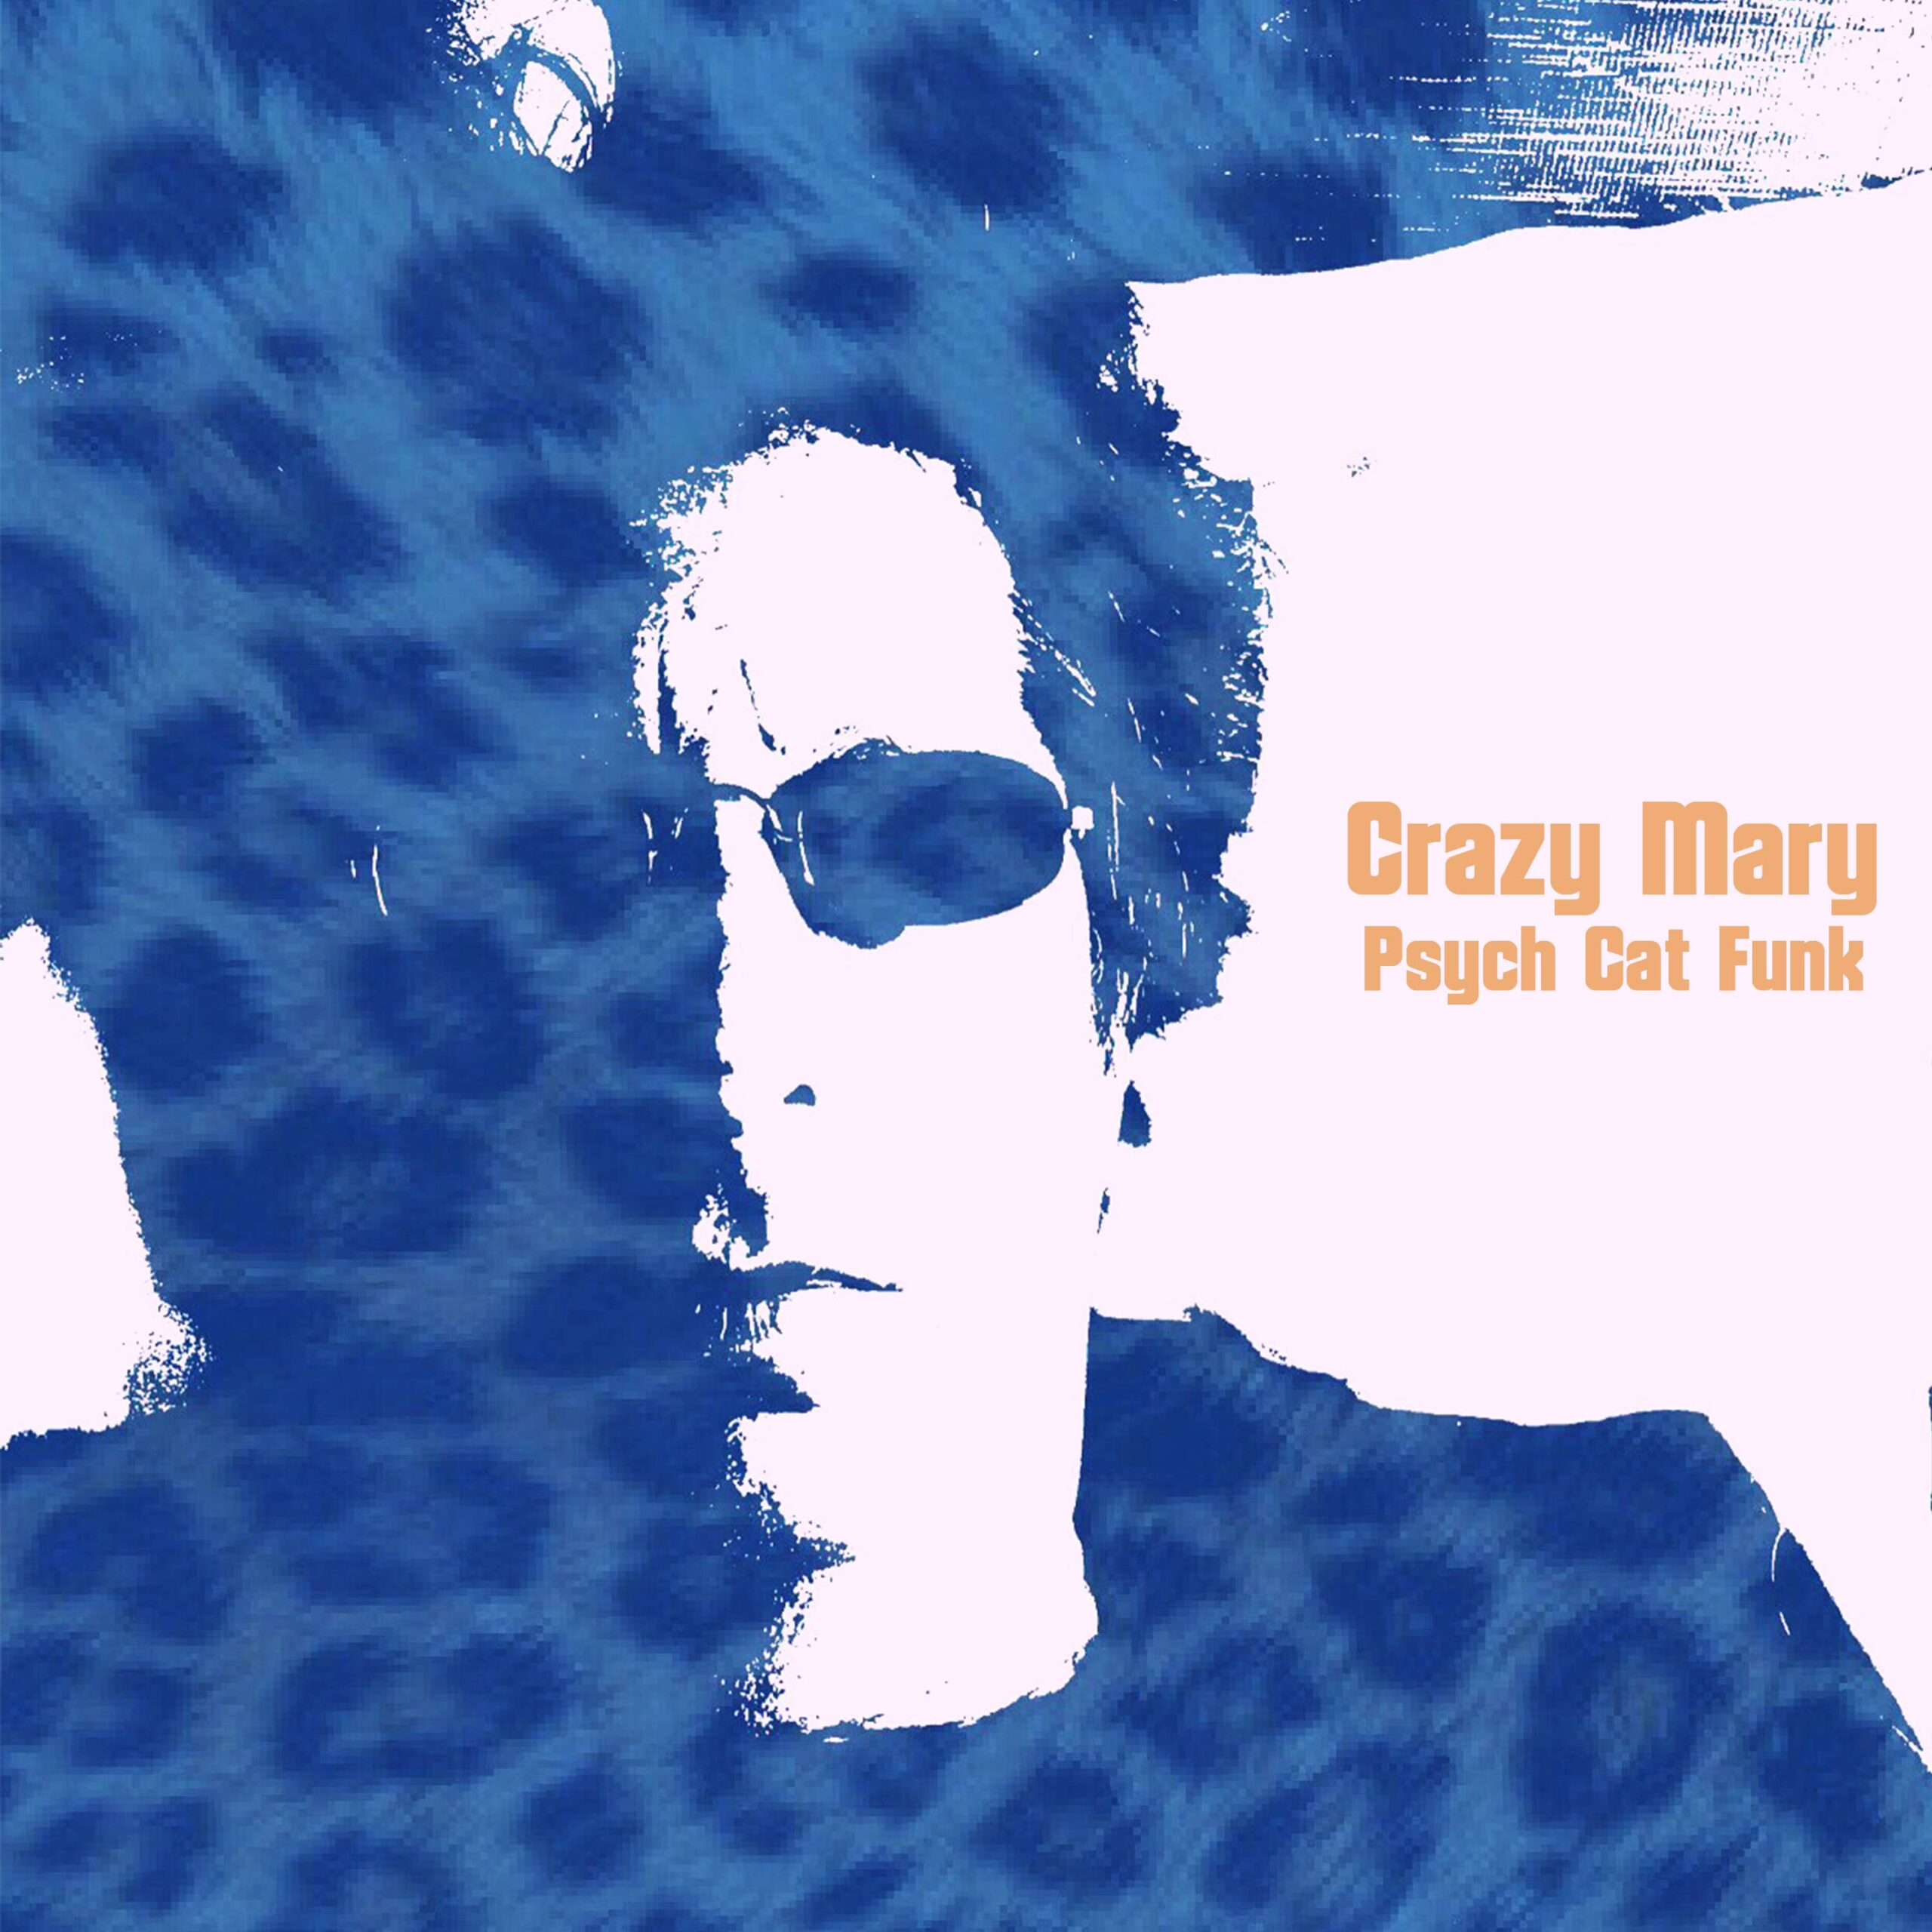 Crazy Mary New Single Psych Cat Funk